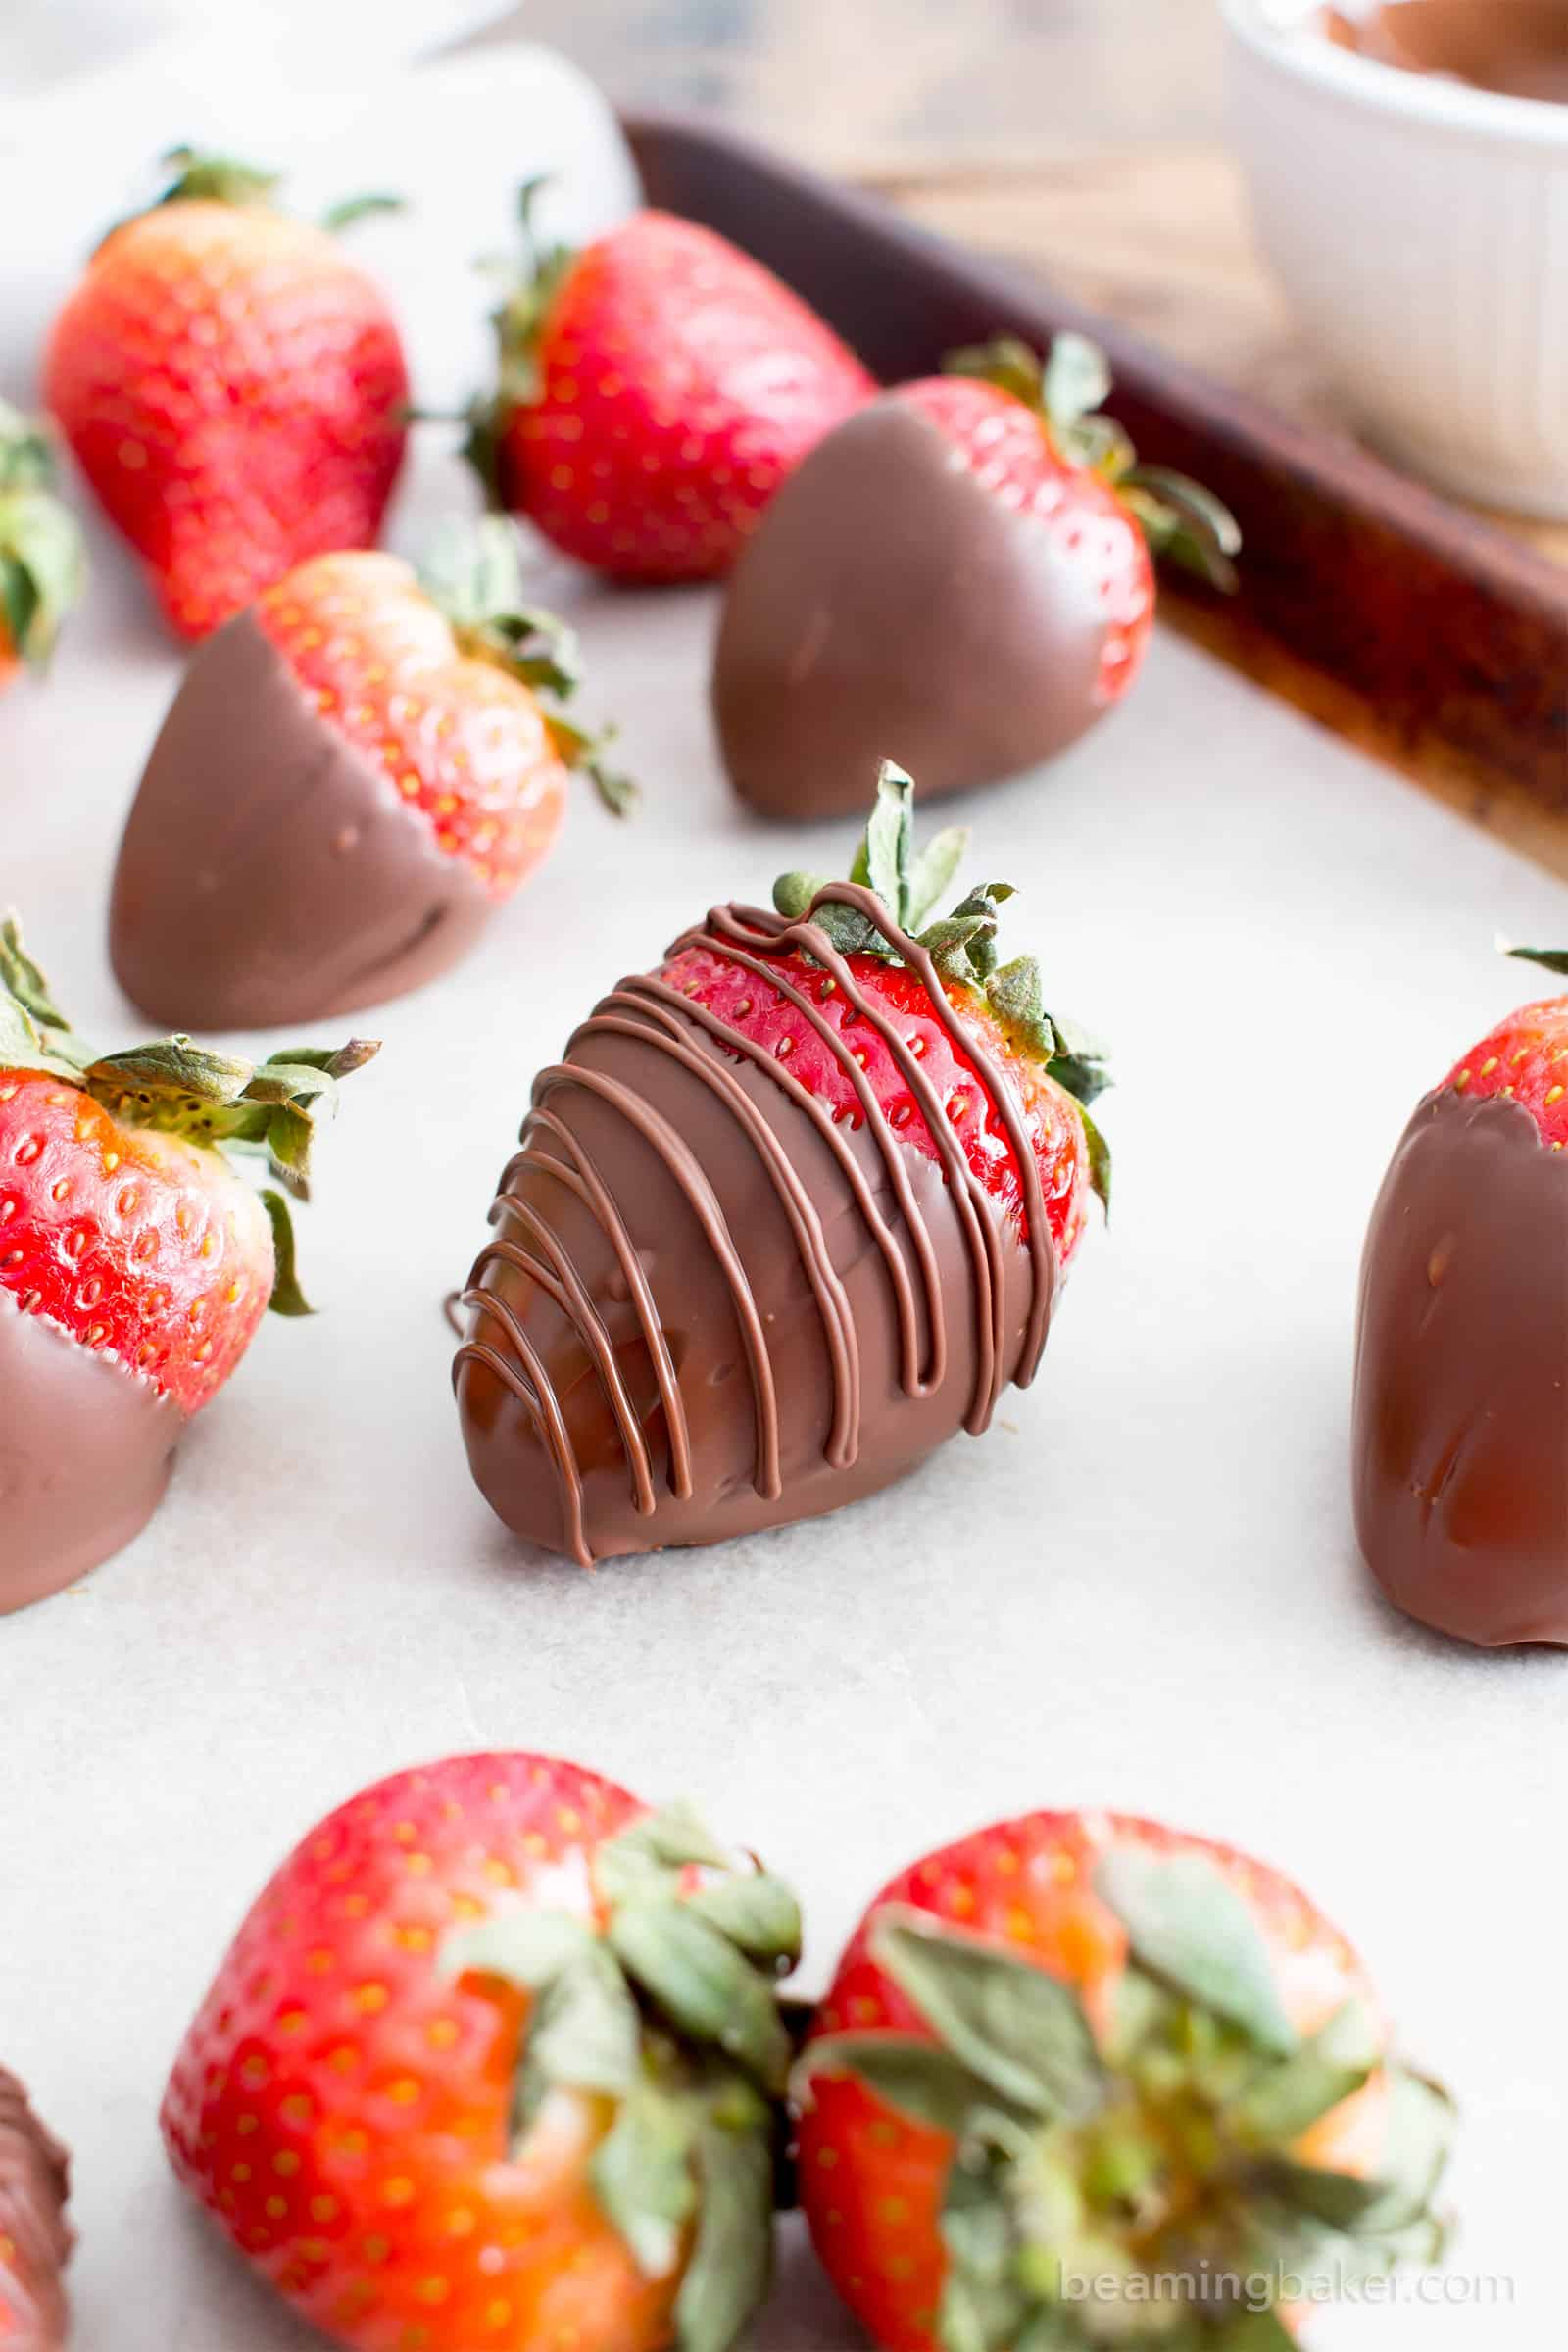 How to Make Chocolate Dipped Strawberries Recipe (V, GF): learn how easy it is to make beautiful, decadently delicious chocolate dipped strawberries! #Vegan #GlutenFree #DairyFree #Paleo #ValentinesDay #Dessert | Recipe on BeamingBaker.com